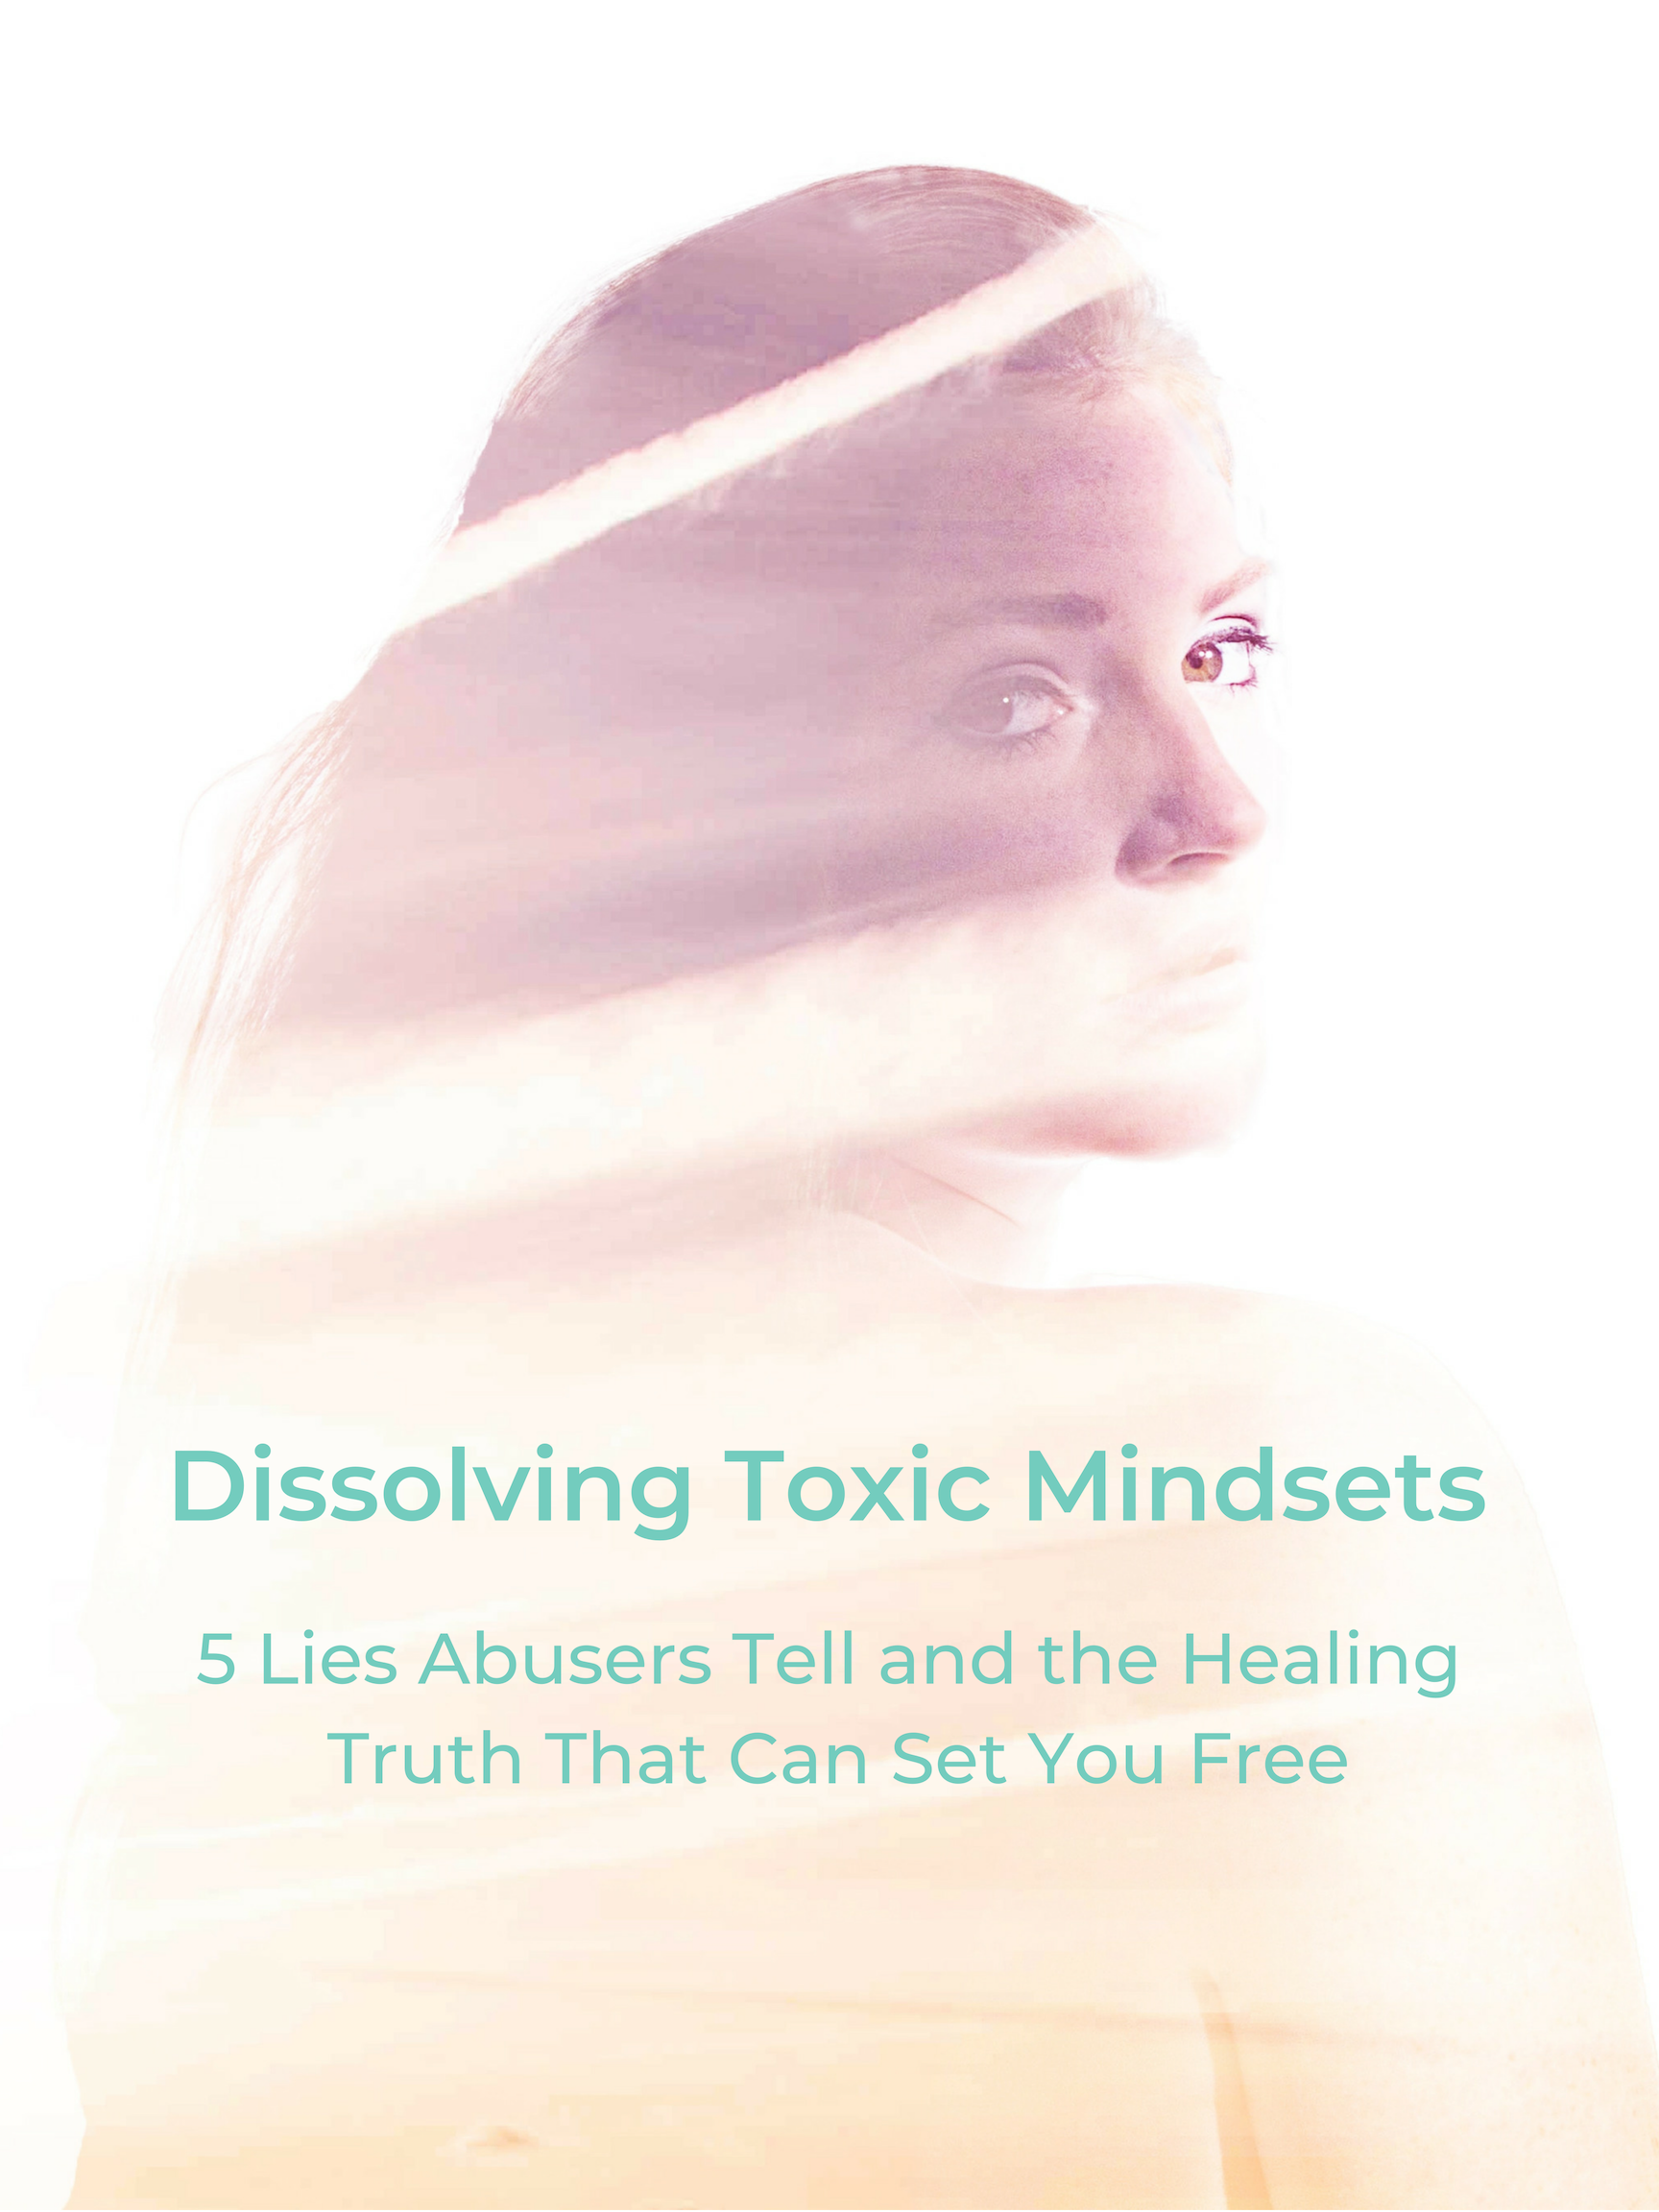 Dissolving Toxic Mindsets (2).png